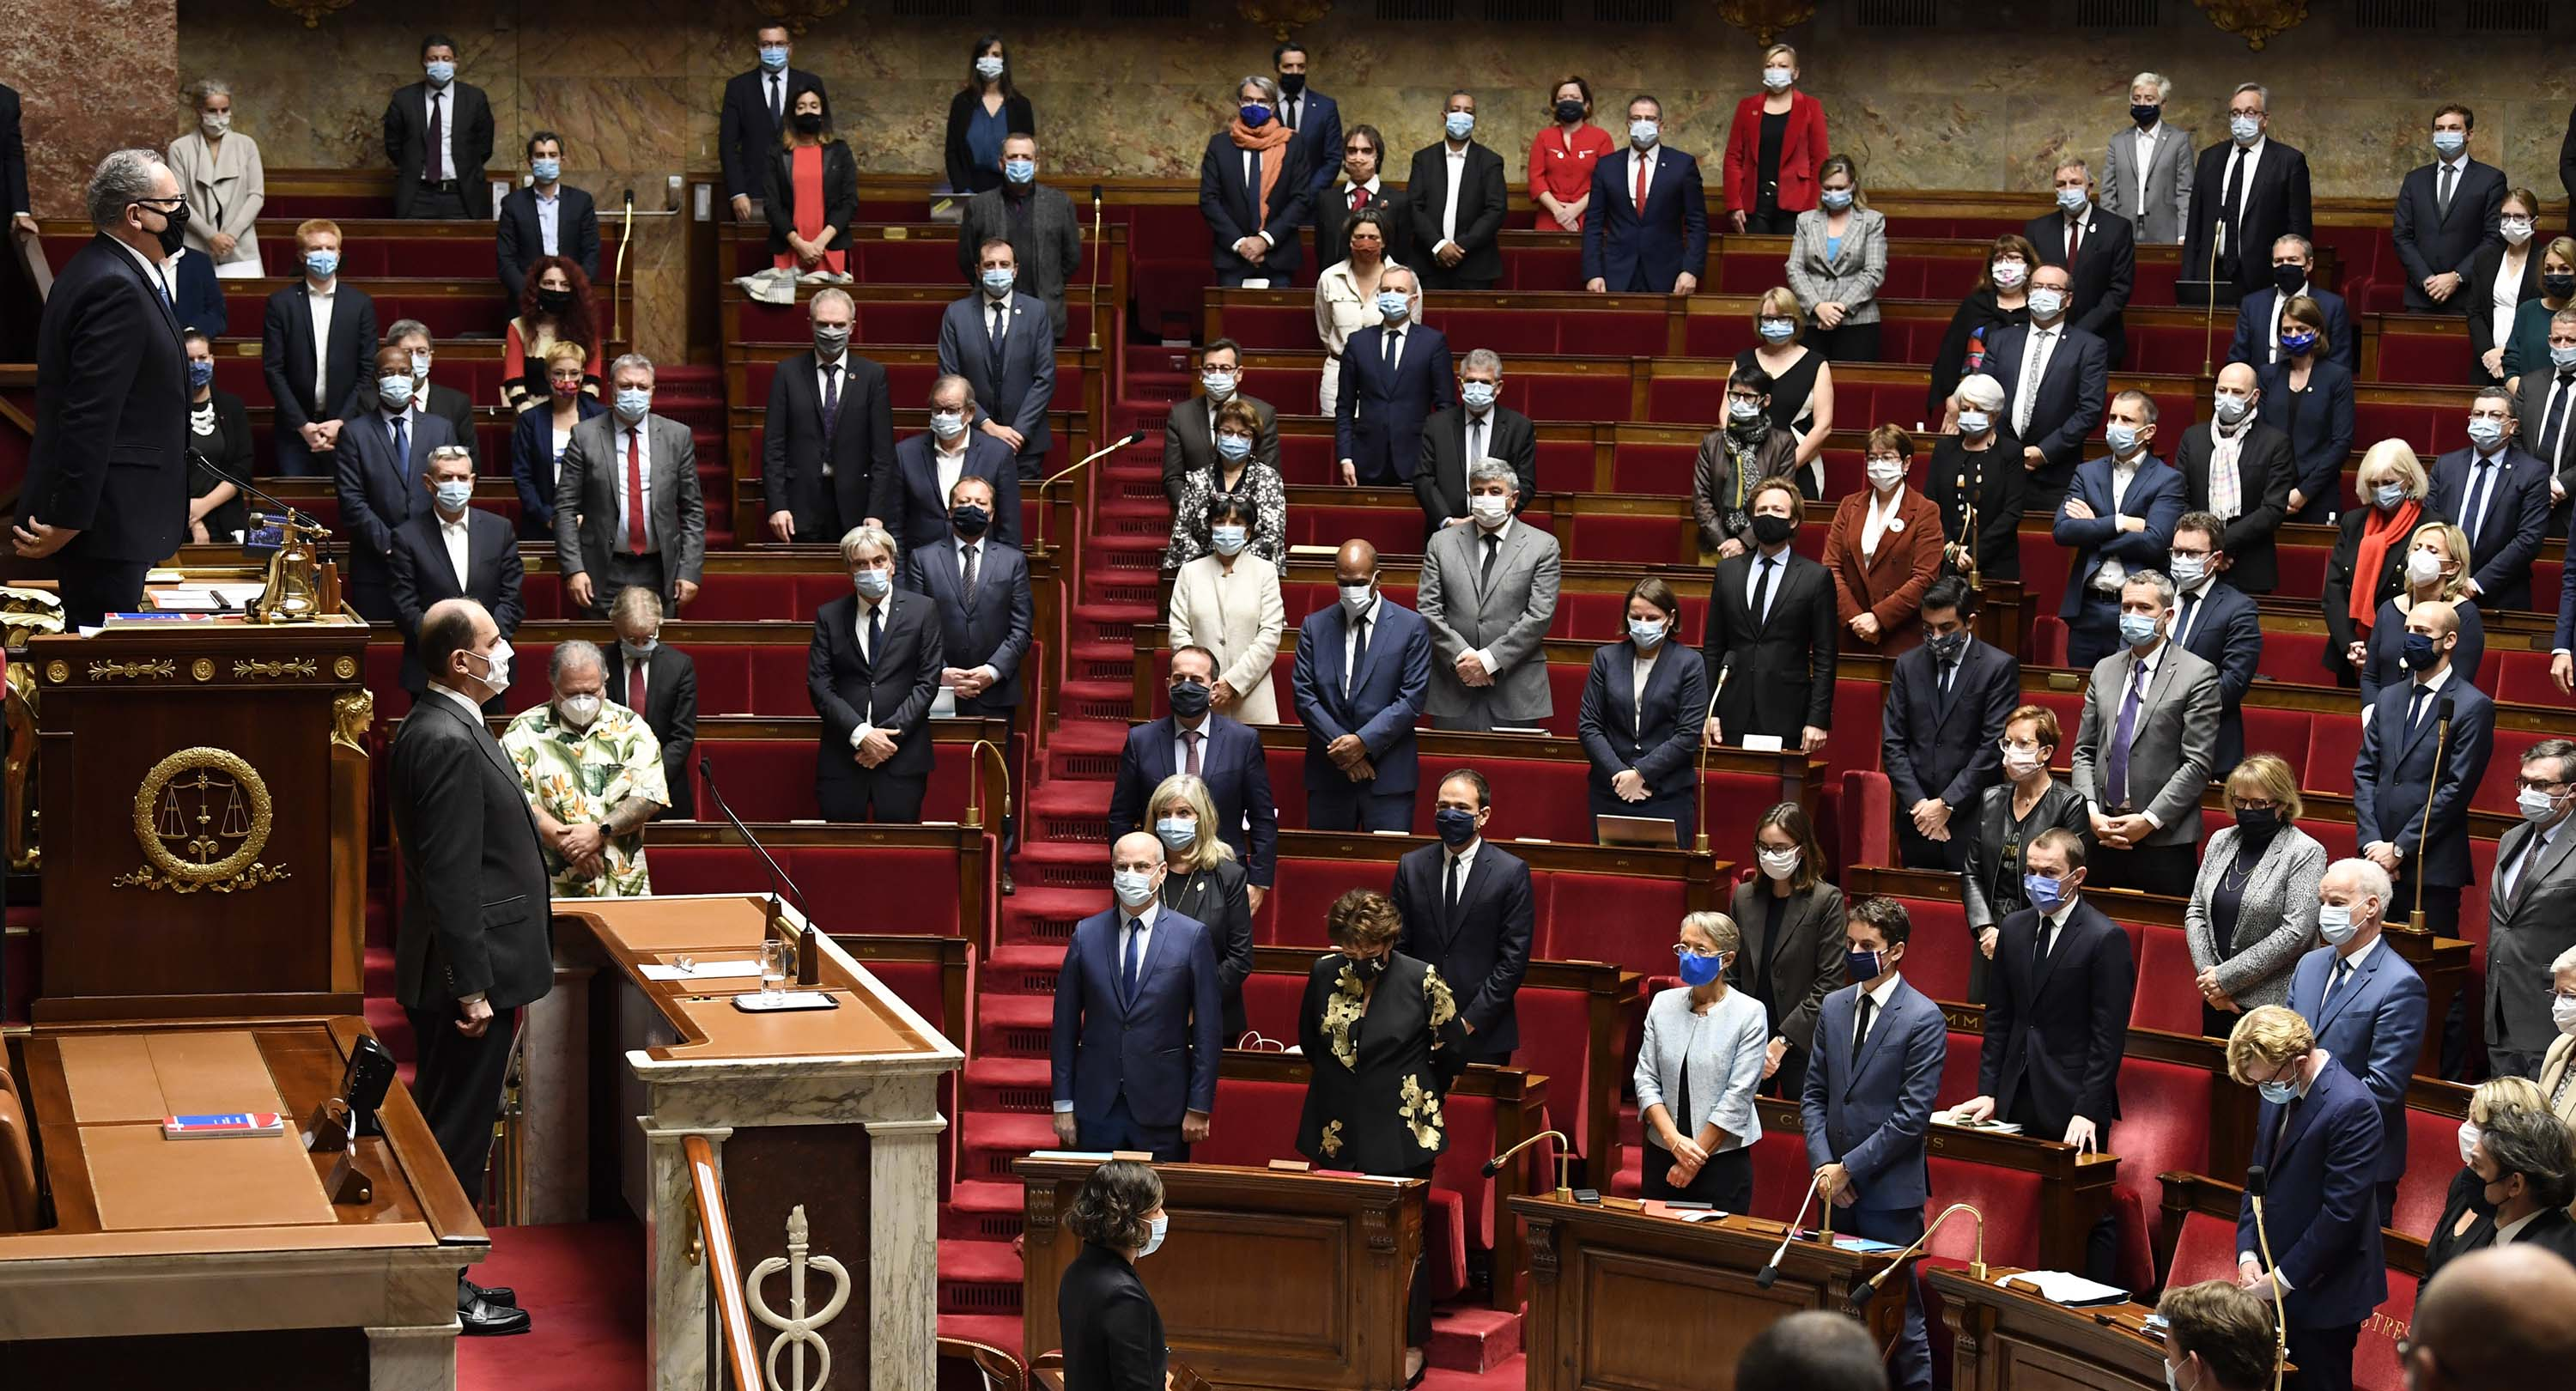 French Prime Minister Jean Castex (second from left, behind the lower desk) leads lawmakers in a moment of silence at the National Assembly in Paris on Thursday, in tribute to the victims of a knife attack in Nice.